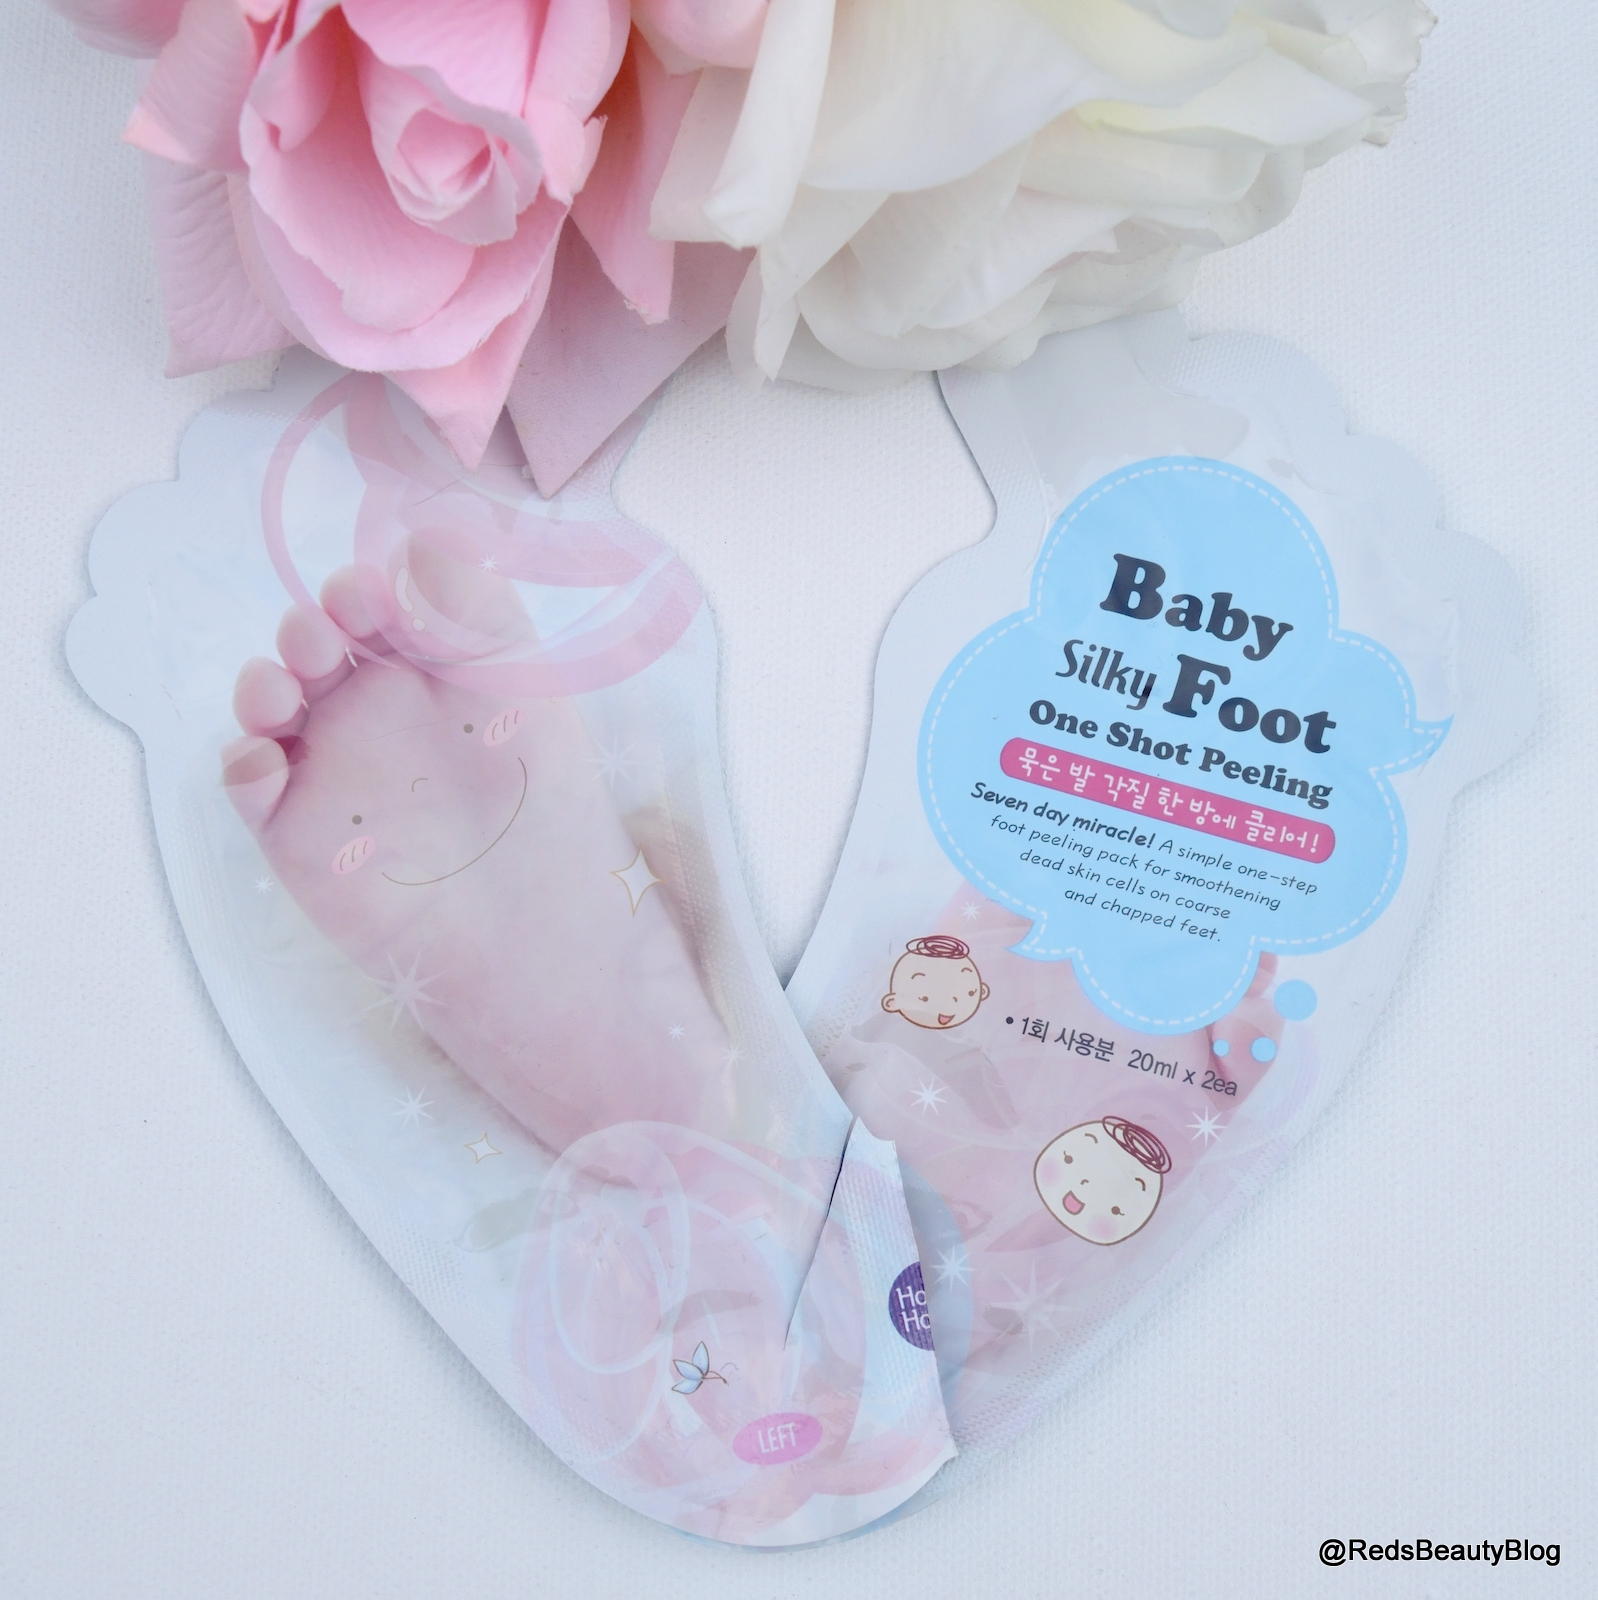 a picture of Holika Holika Silky Foot One Shot Peel